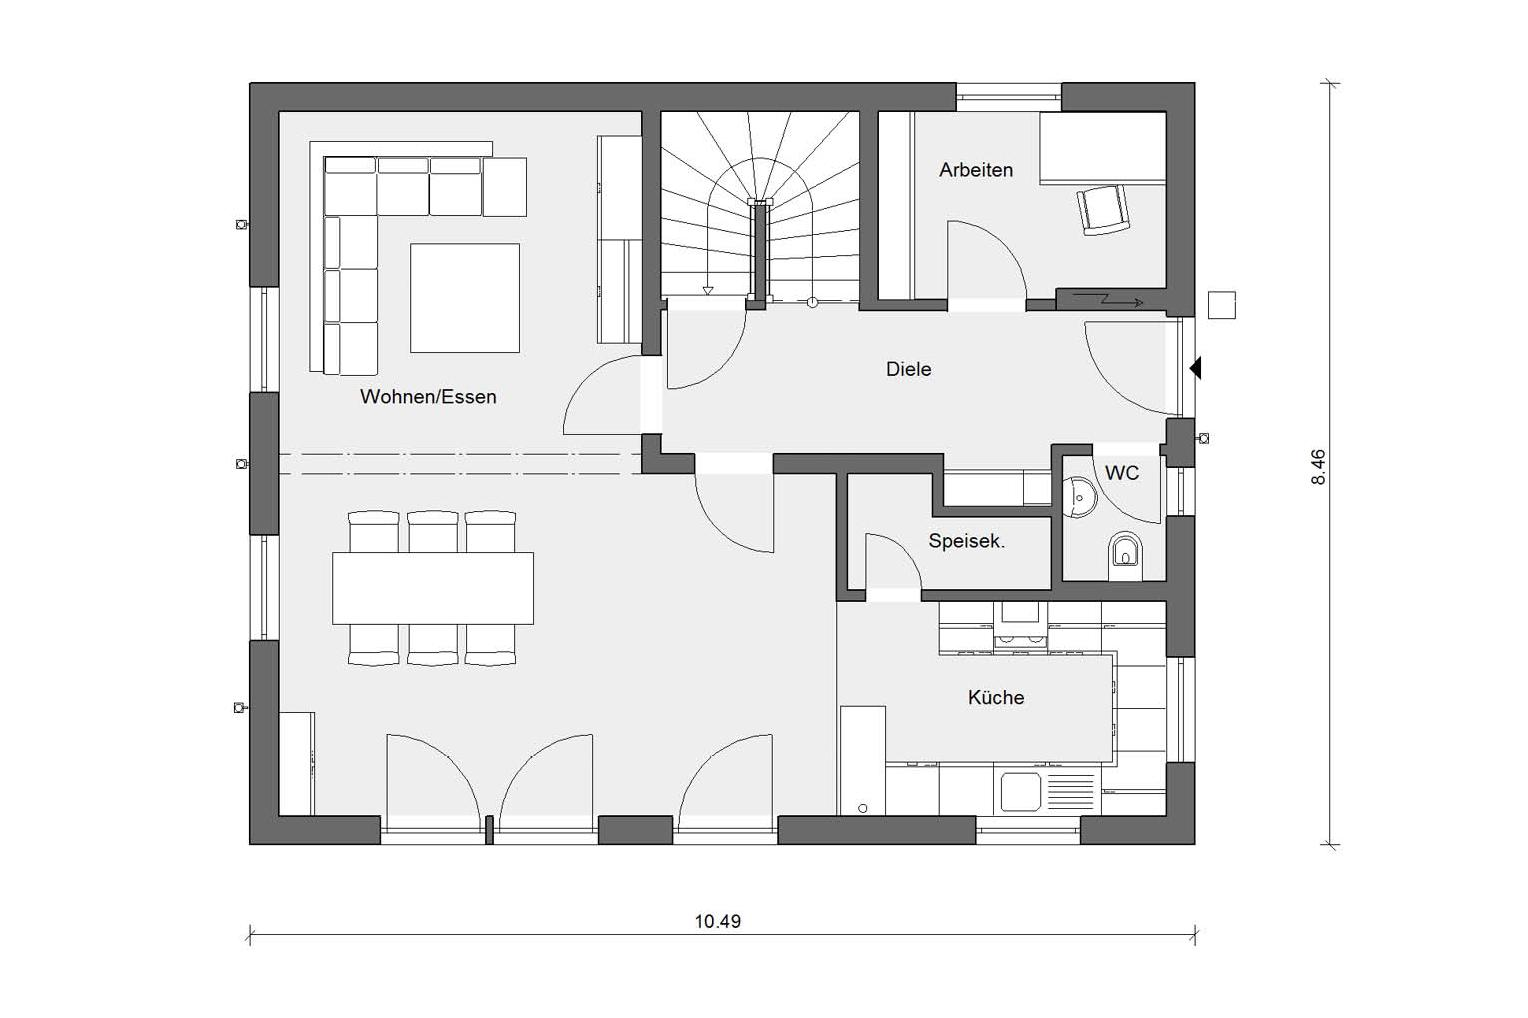 Floor plan ground floor E 15-147.3 Detached house with terrace